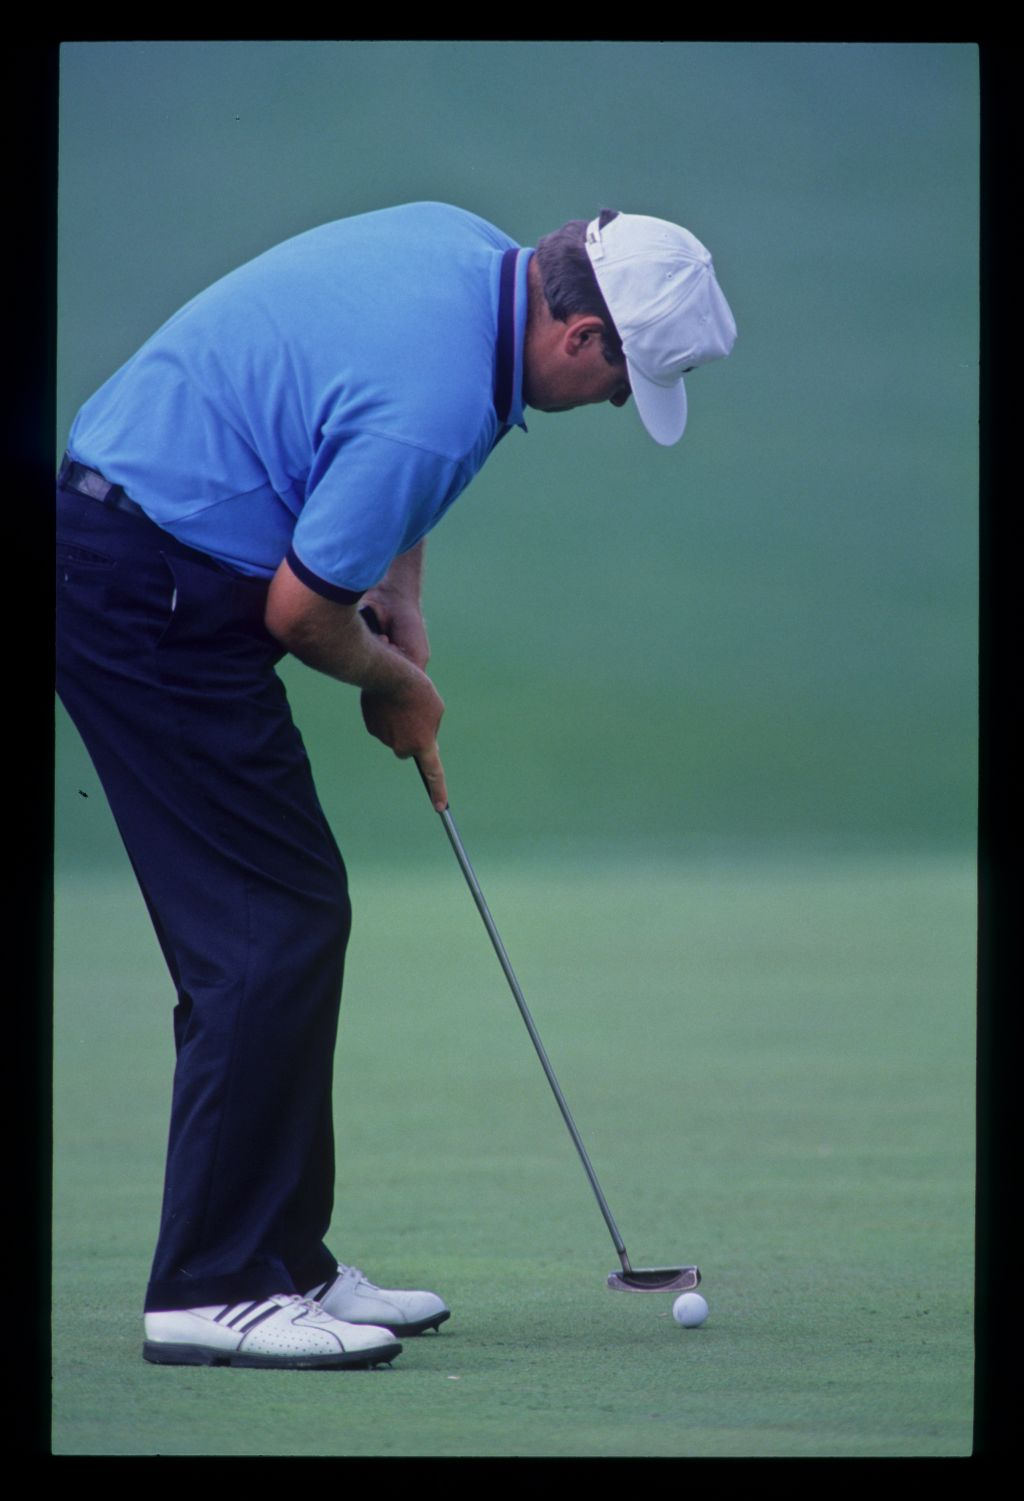 Steven Richardson putting during the 1992 Masters